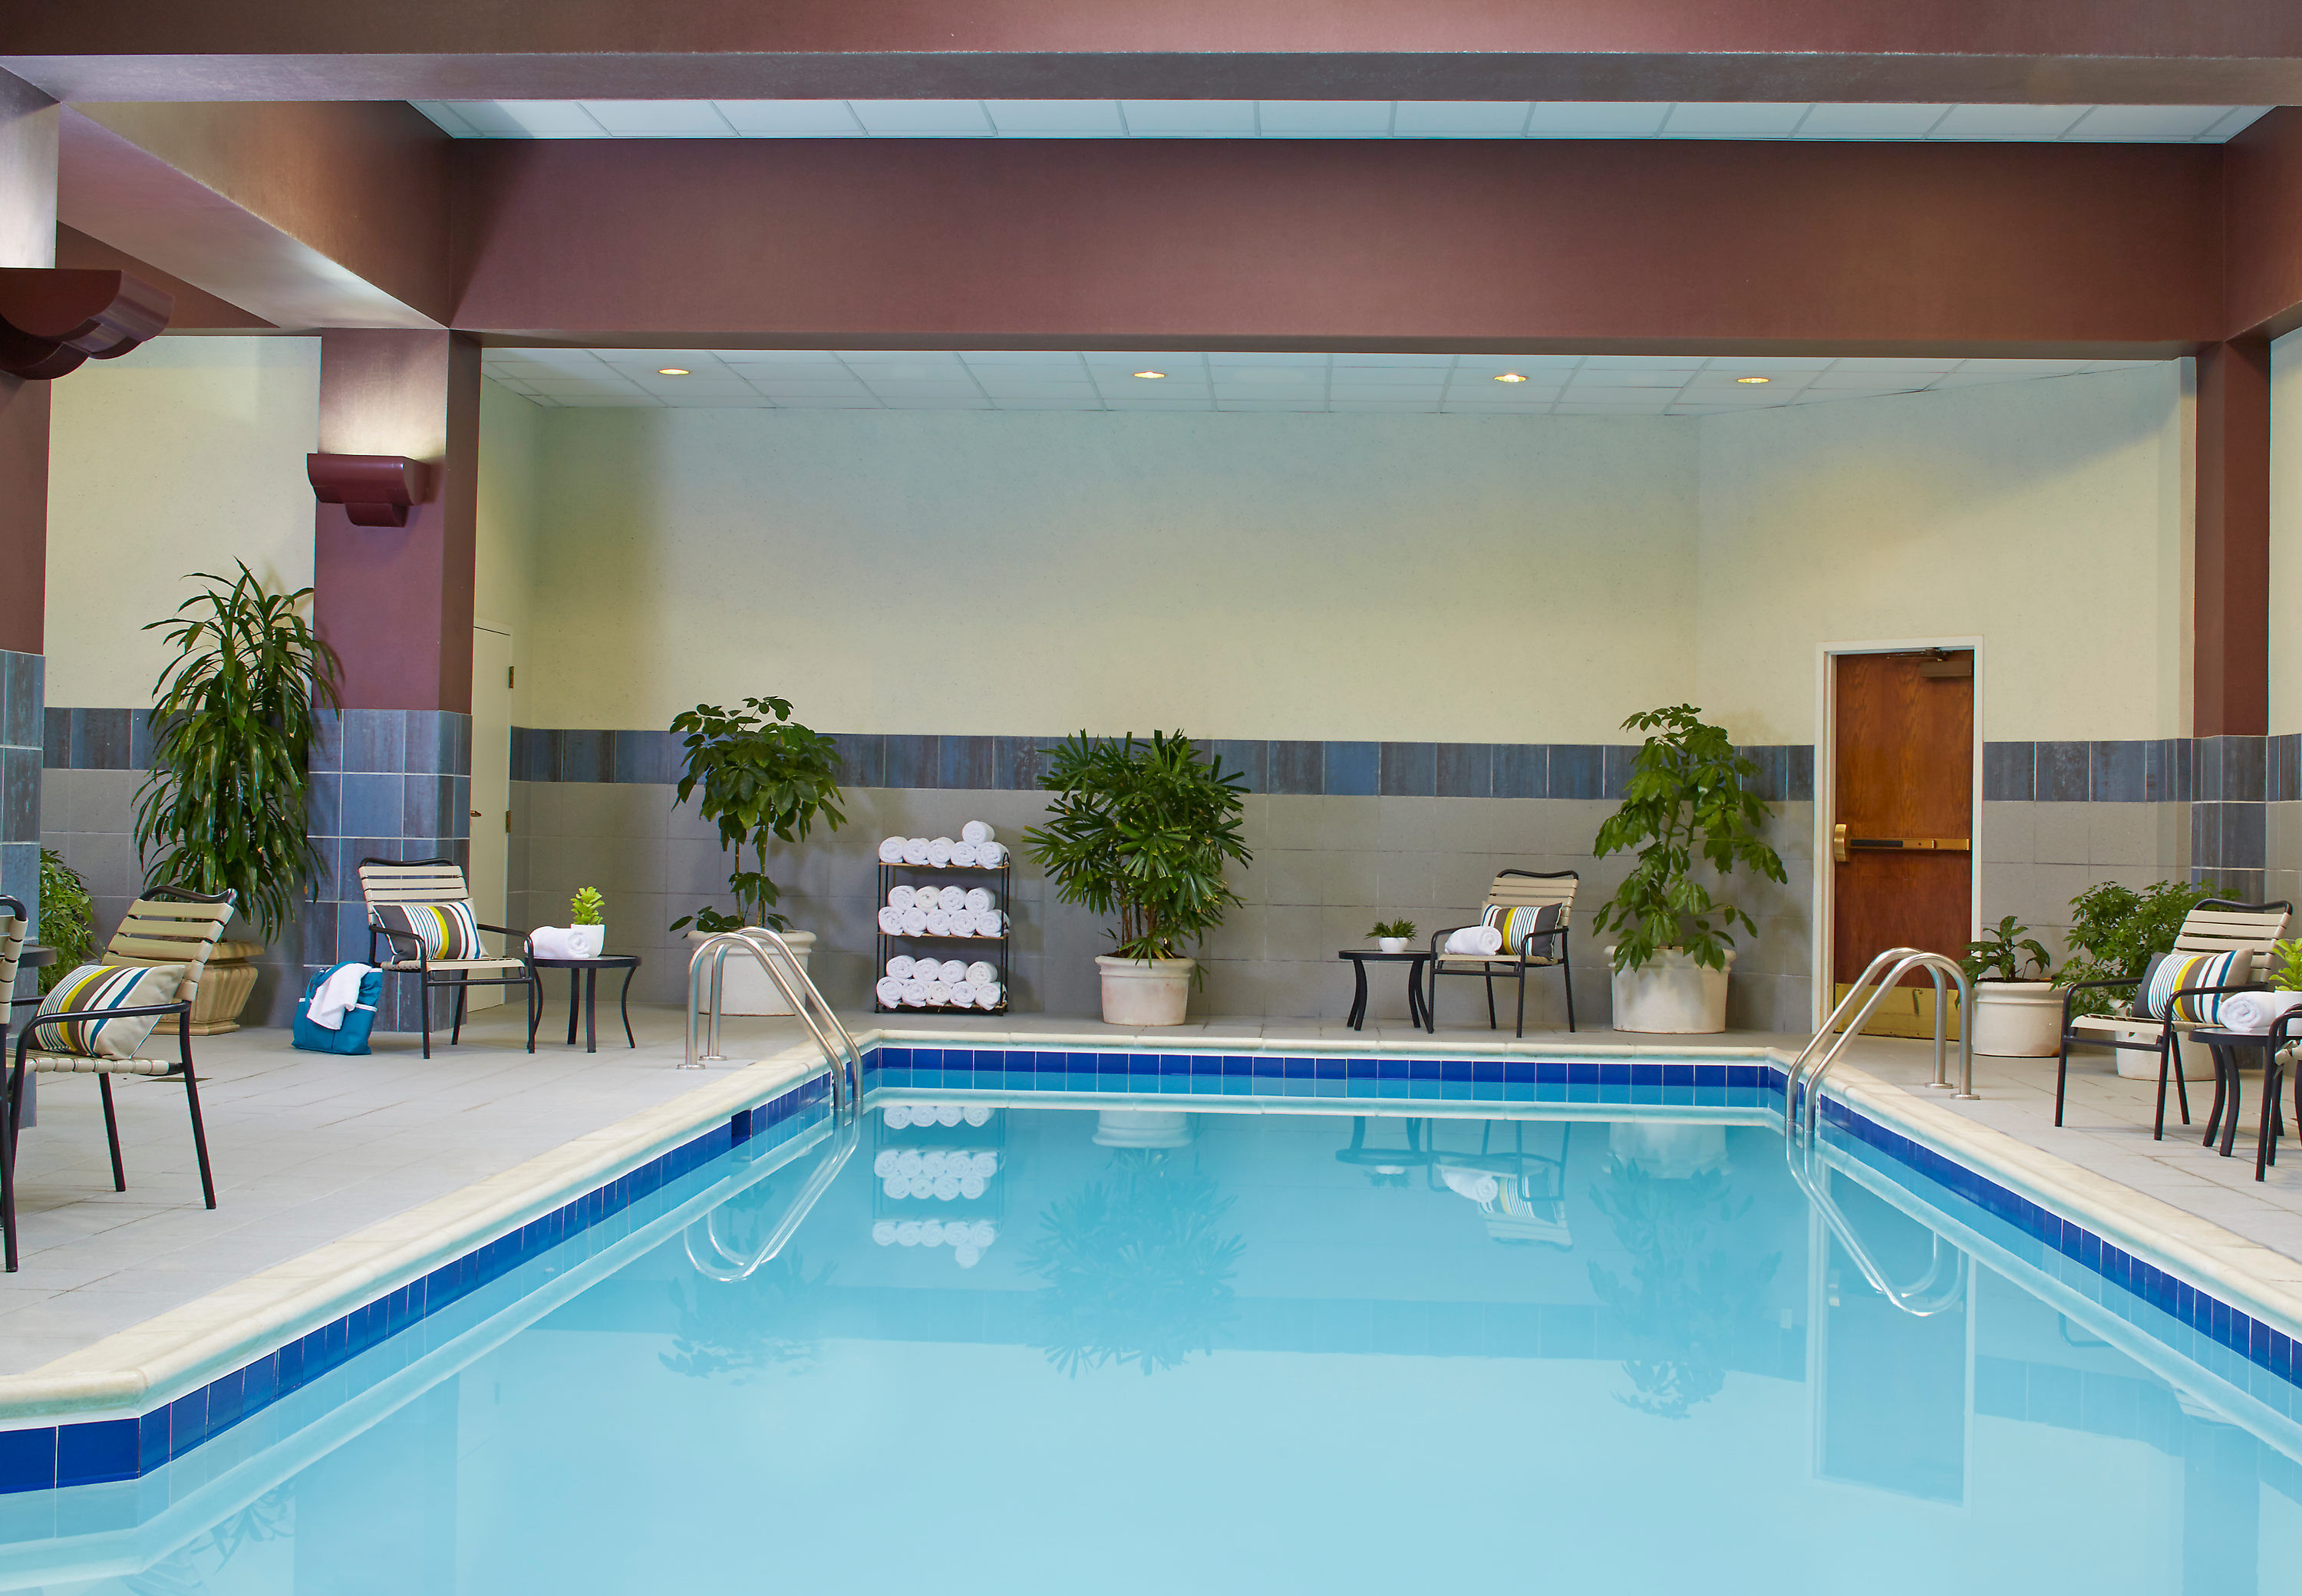 Cleveland marriott east warrensville heights oh www for Cash piscine cuers